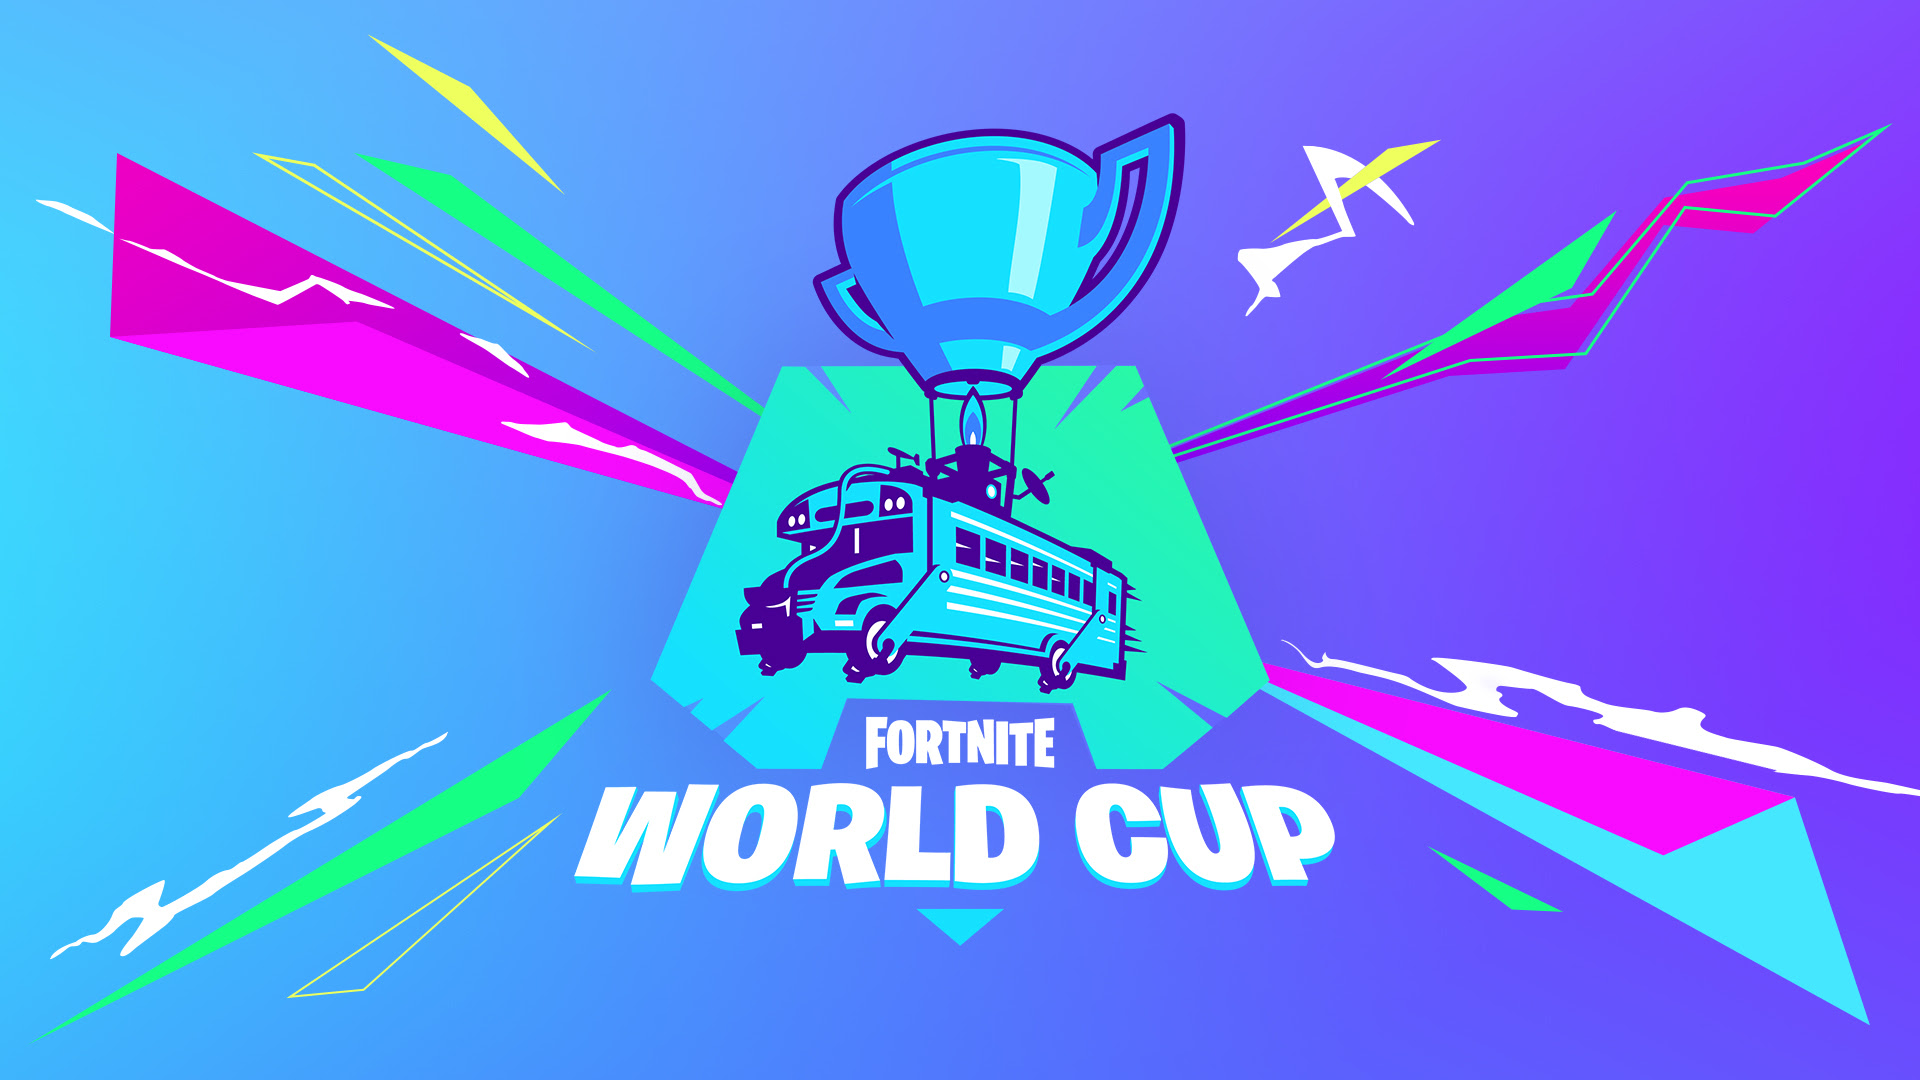 fortnite world cup creative